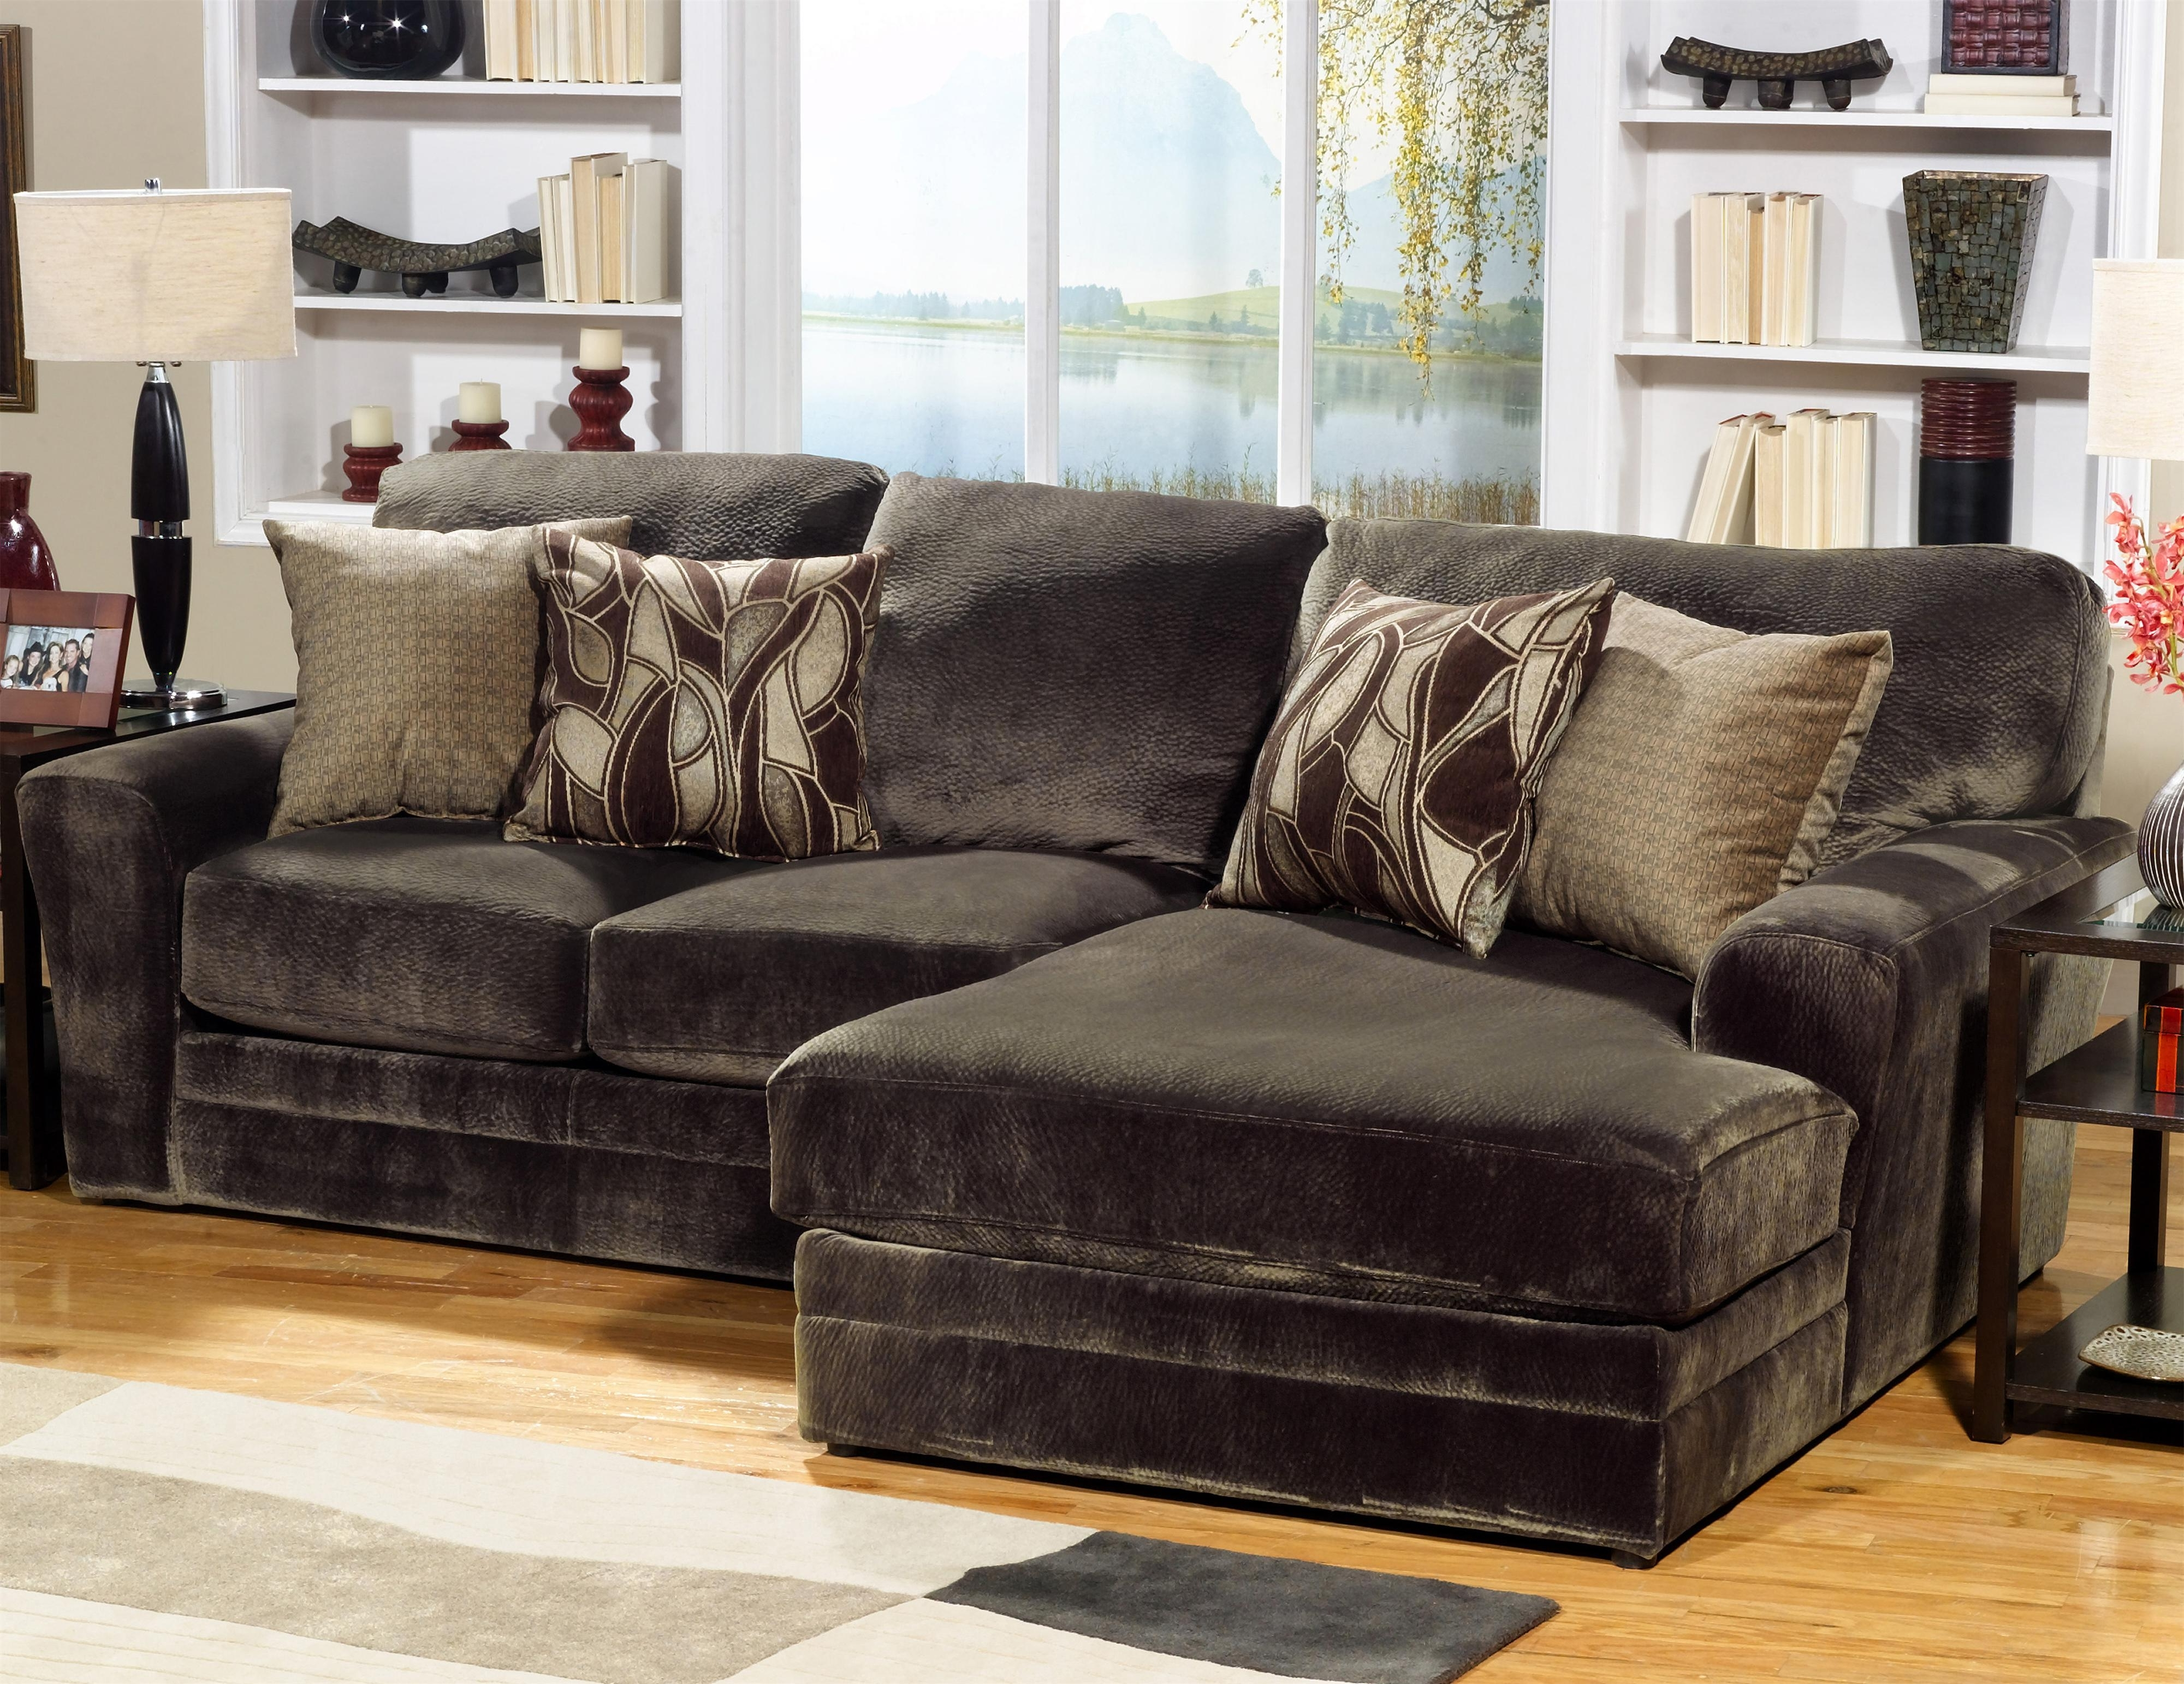 Pottery Barn Sectional Sofas In 2018 Sectional Couch With Recliner Pottery Barn Fabric Sectional Big (View 7 of 15)